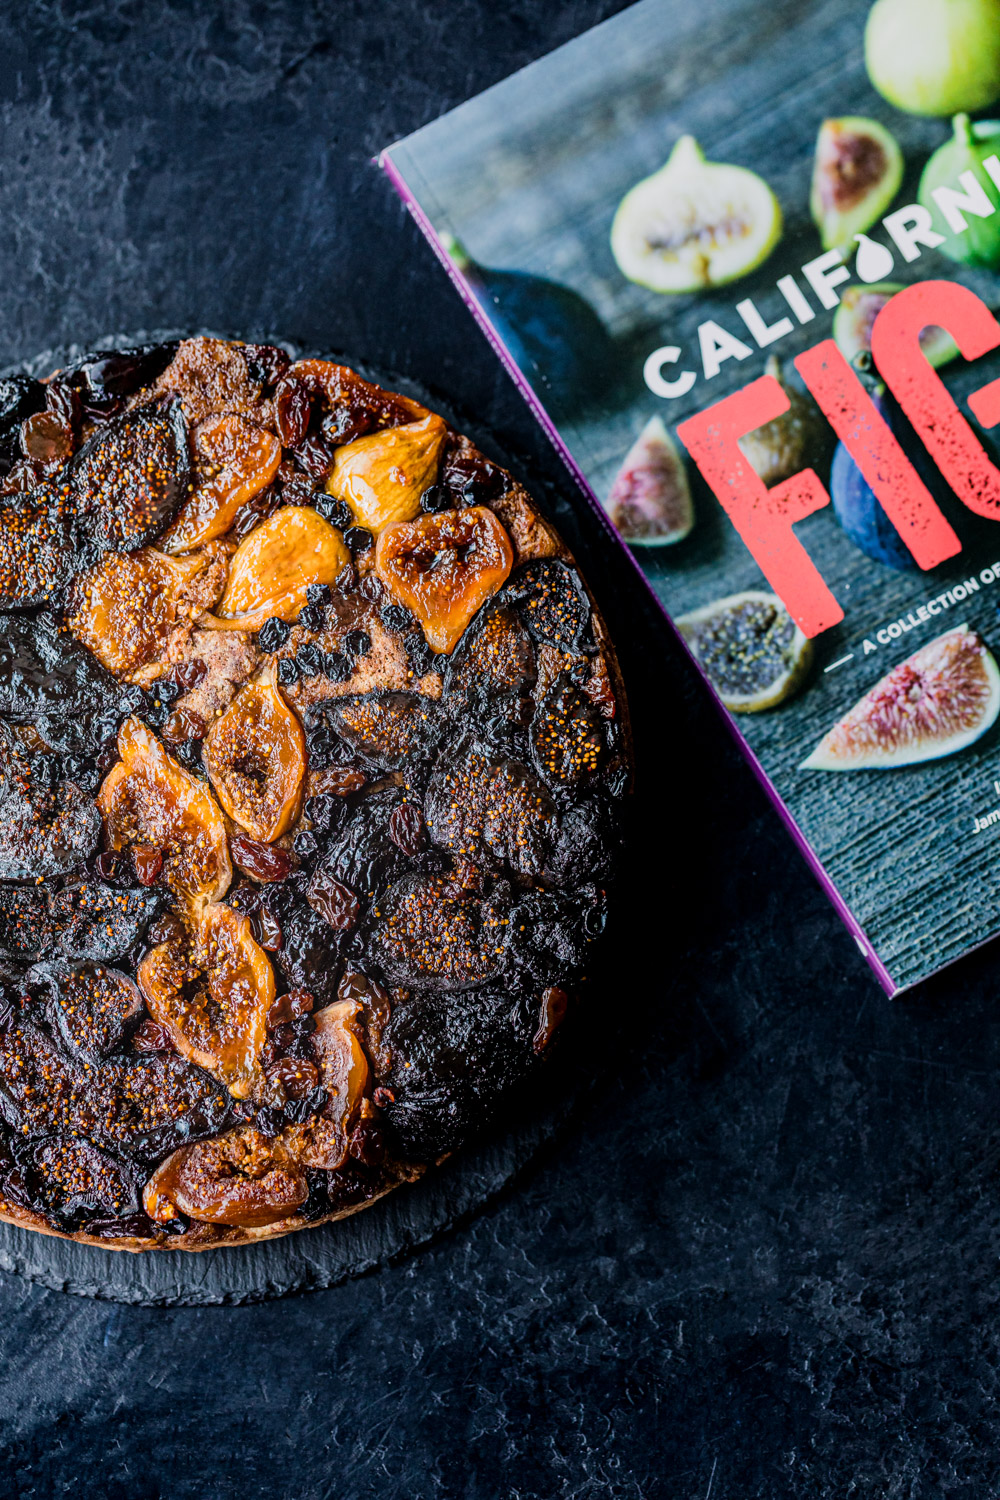 dried fig cake shot next to the California Figs book